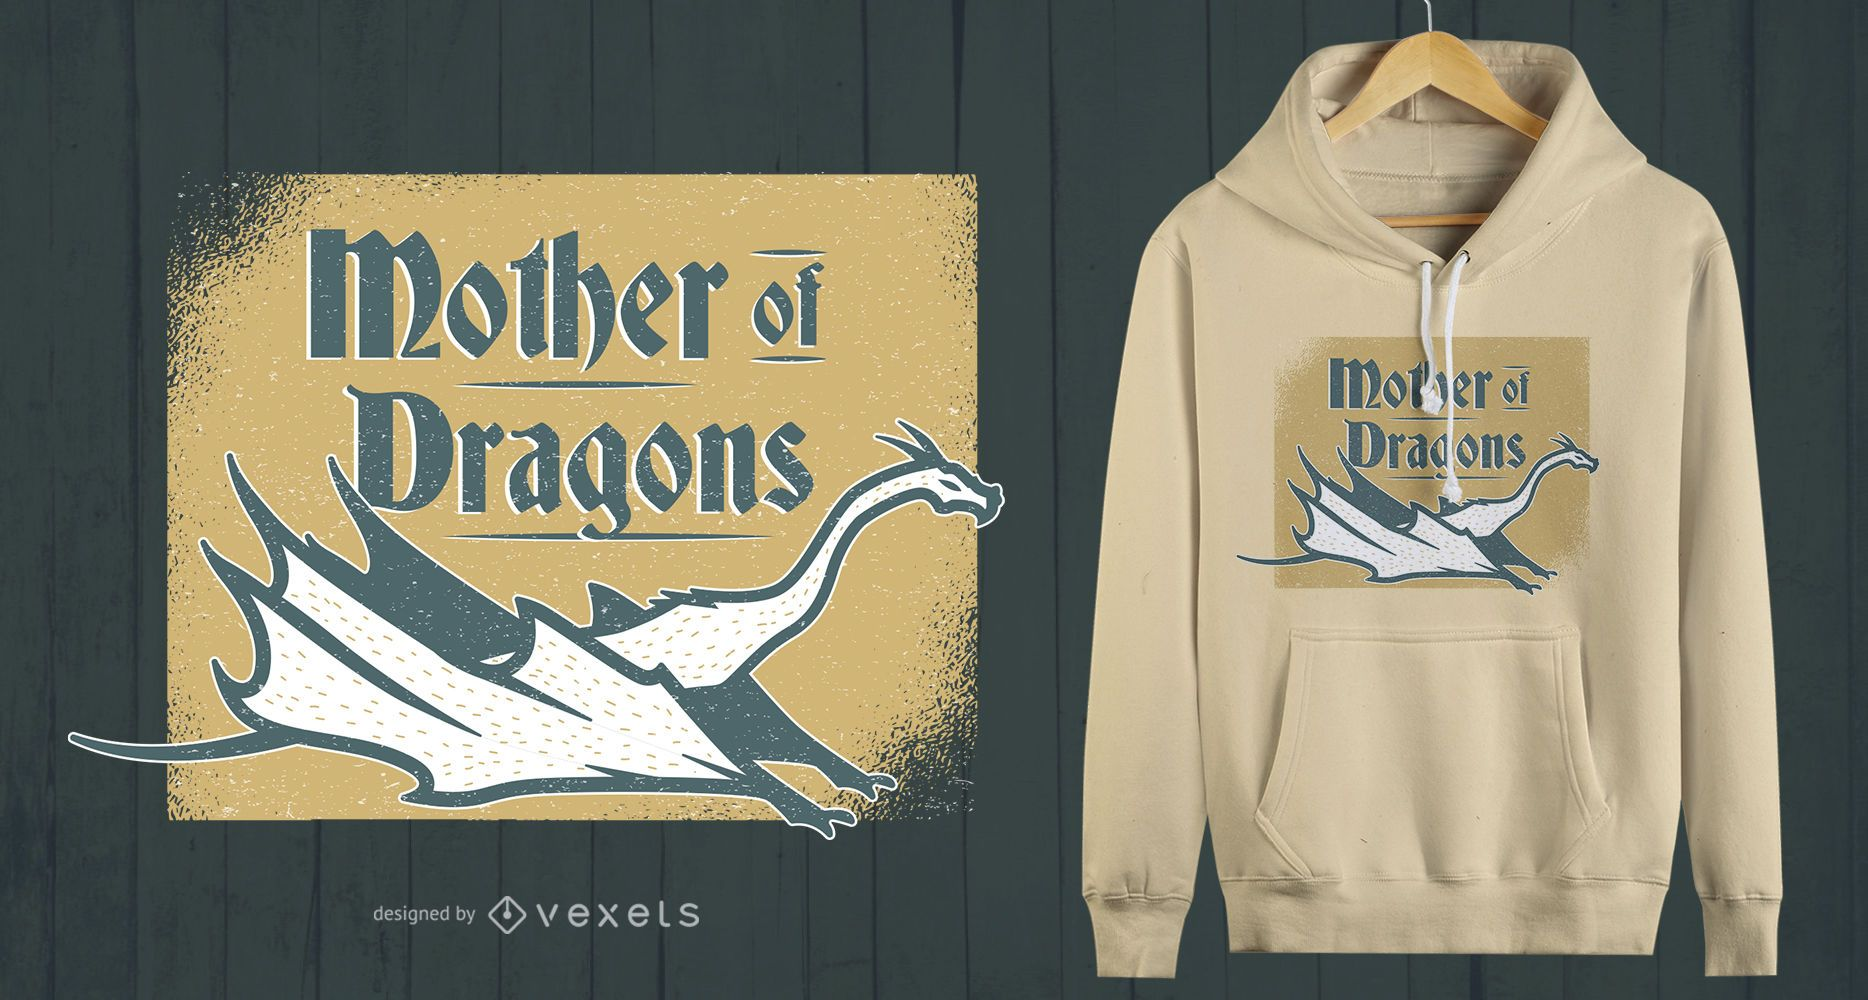 Mother of Dragons T-shirt Design